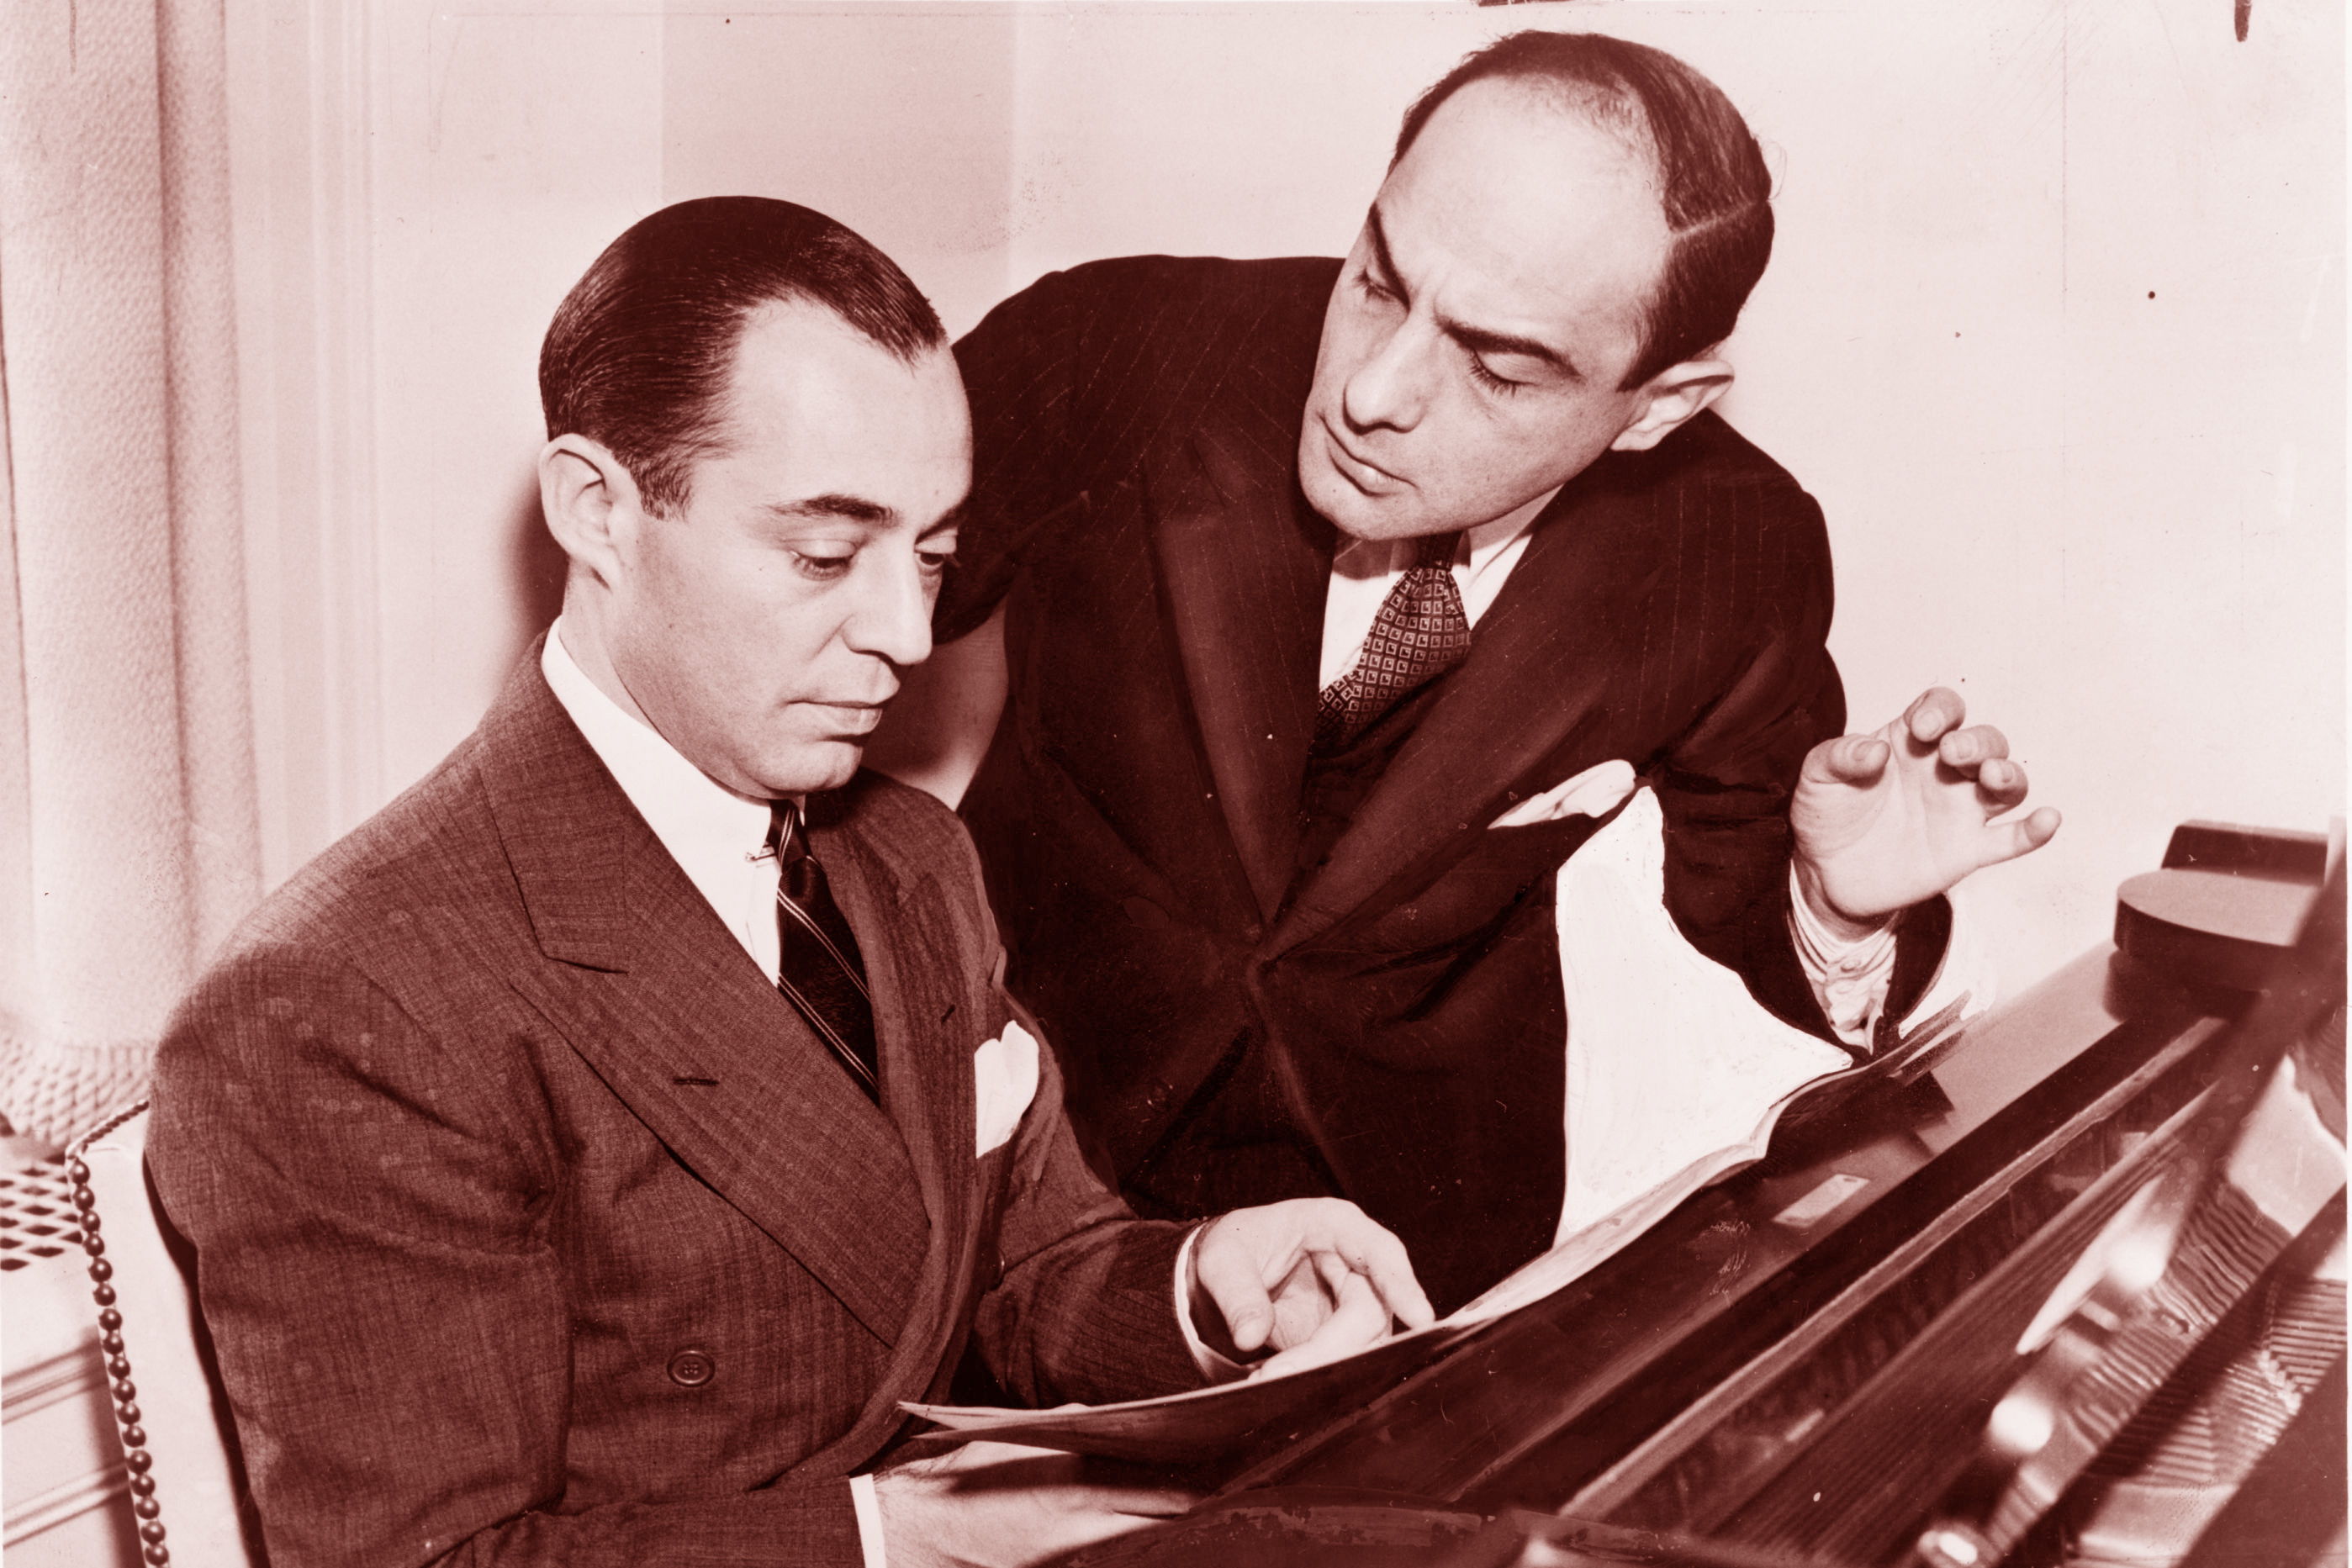 Composer Richard Rodgers (seated) and lyricist Larry Hart collaborated until Hart's untimely death in 1943.